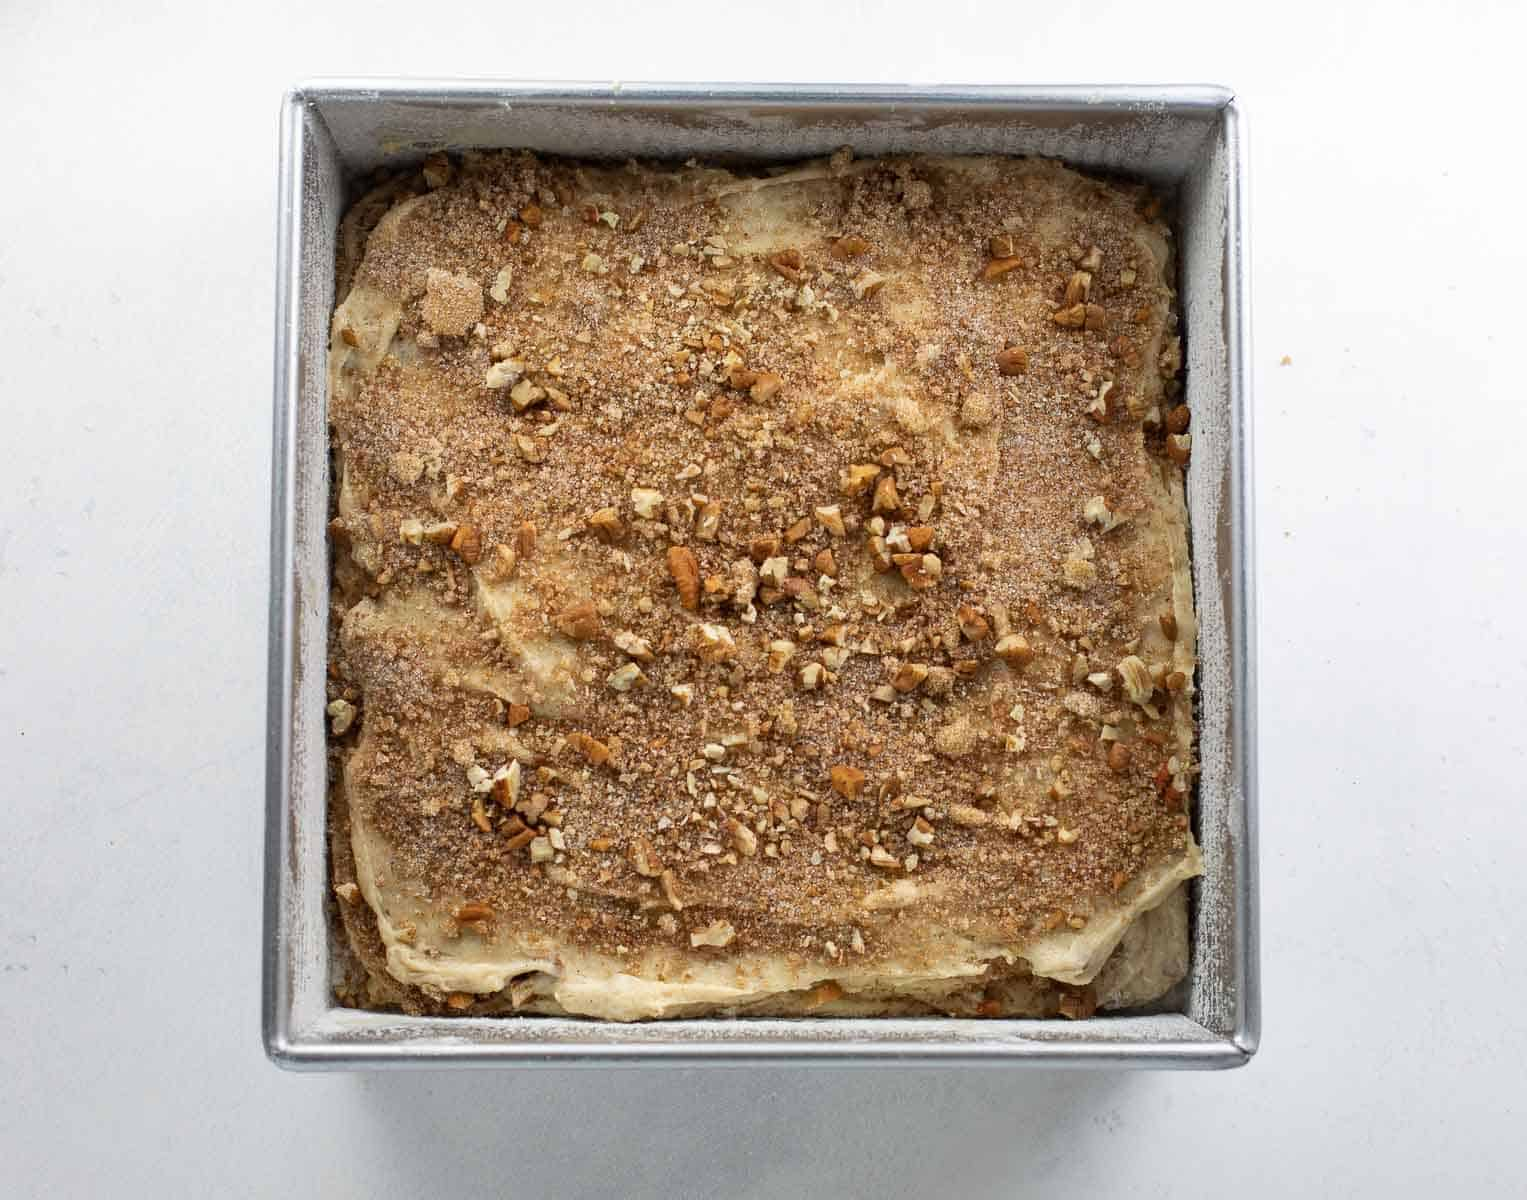 coffee cake batter layered with cinnamon nut mixture in baking dish